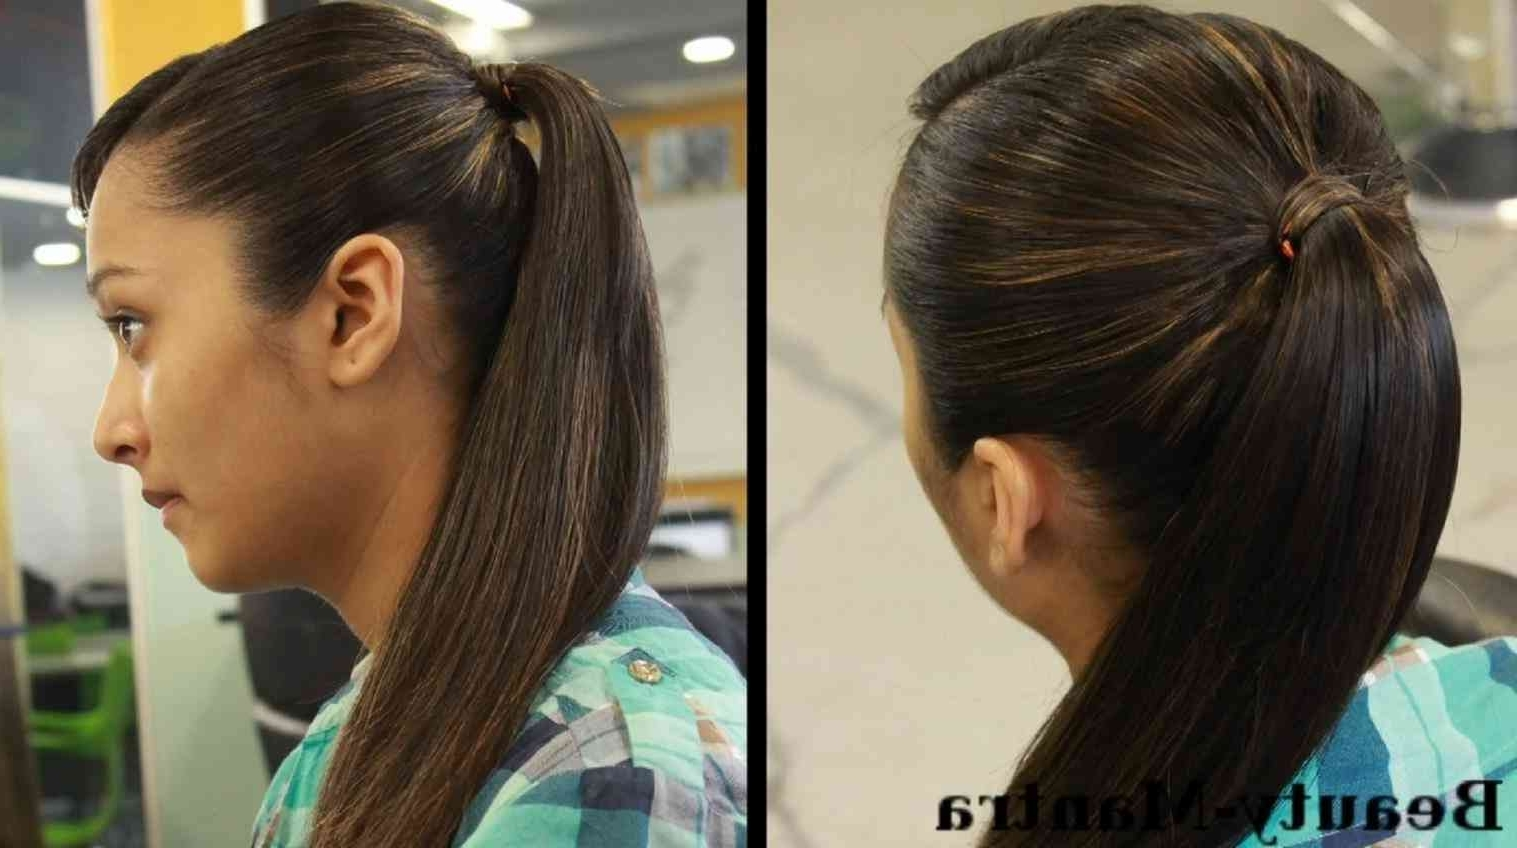 Hairstyles Long Hairstyle For Girls Ponytail For Long Hair Simple Within Trendy Ladder Braid Side Ponytail Hairstyles (Gallery 18 of 20)